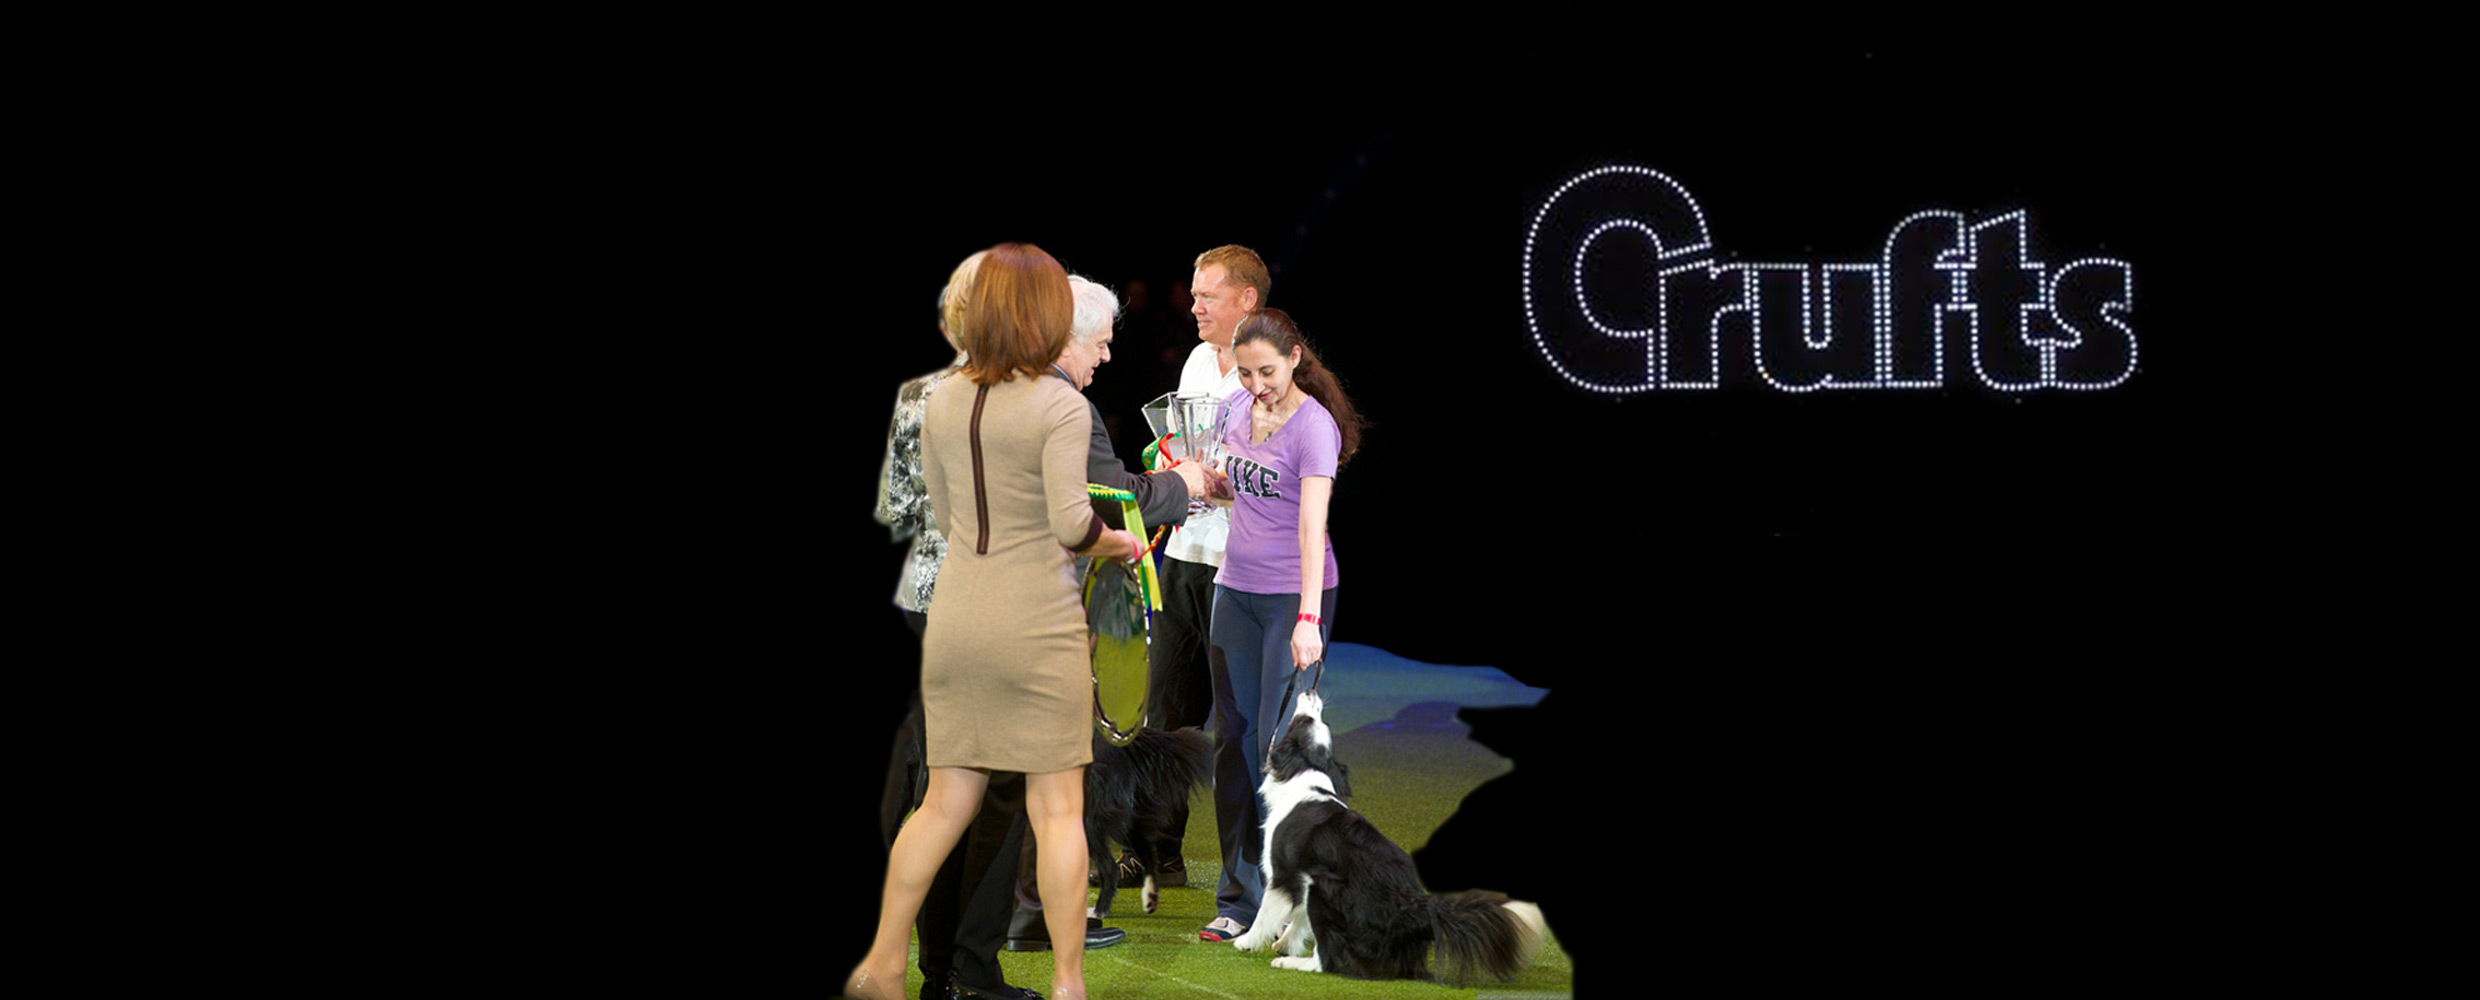 Alison Roets with Border Collie Ostara at Crufts prize giving